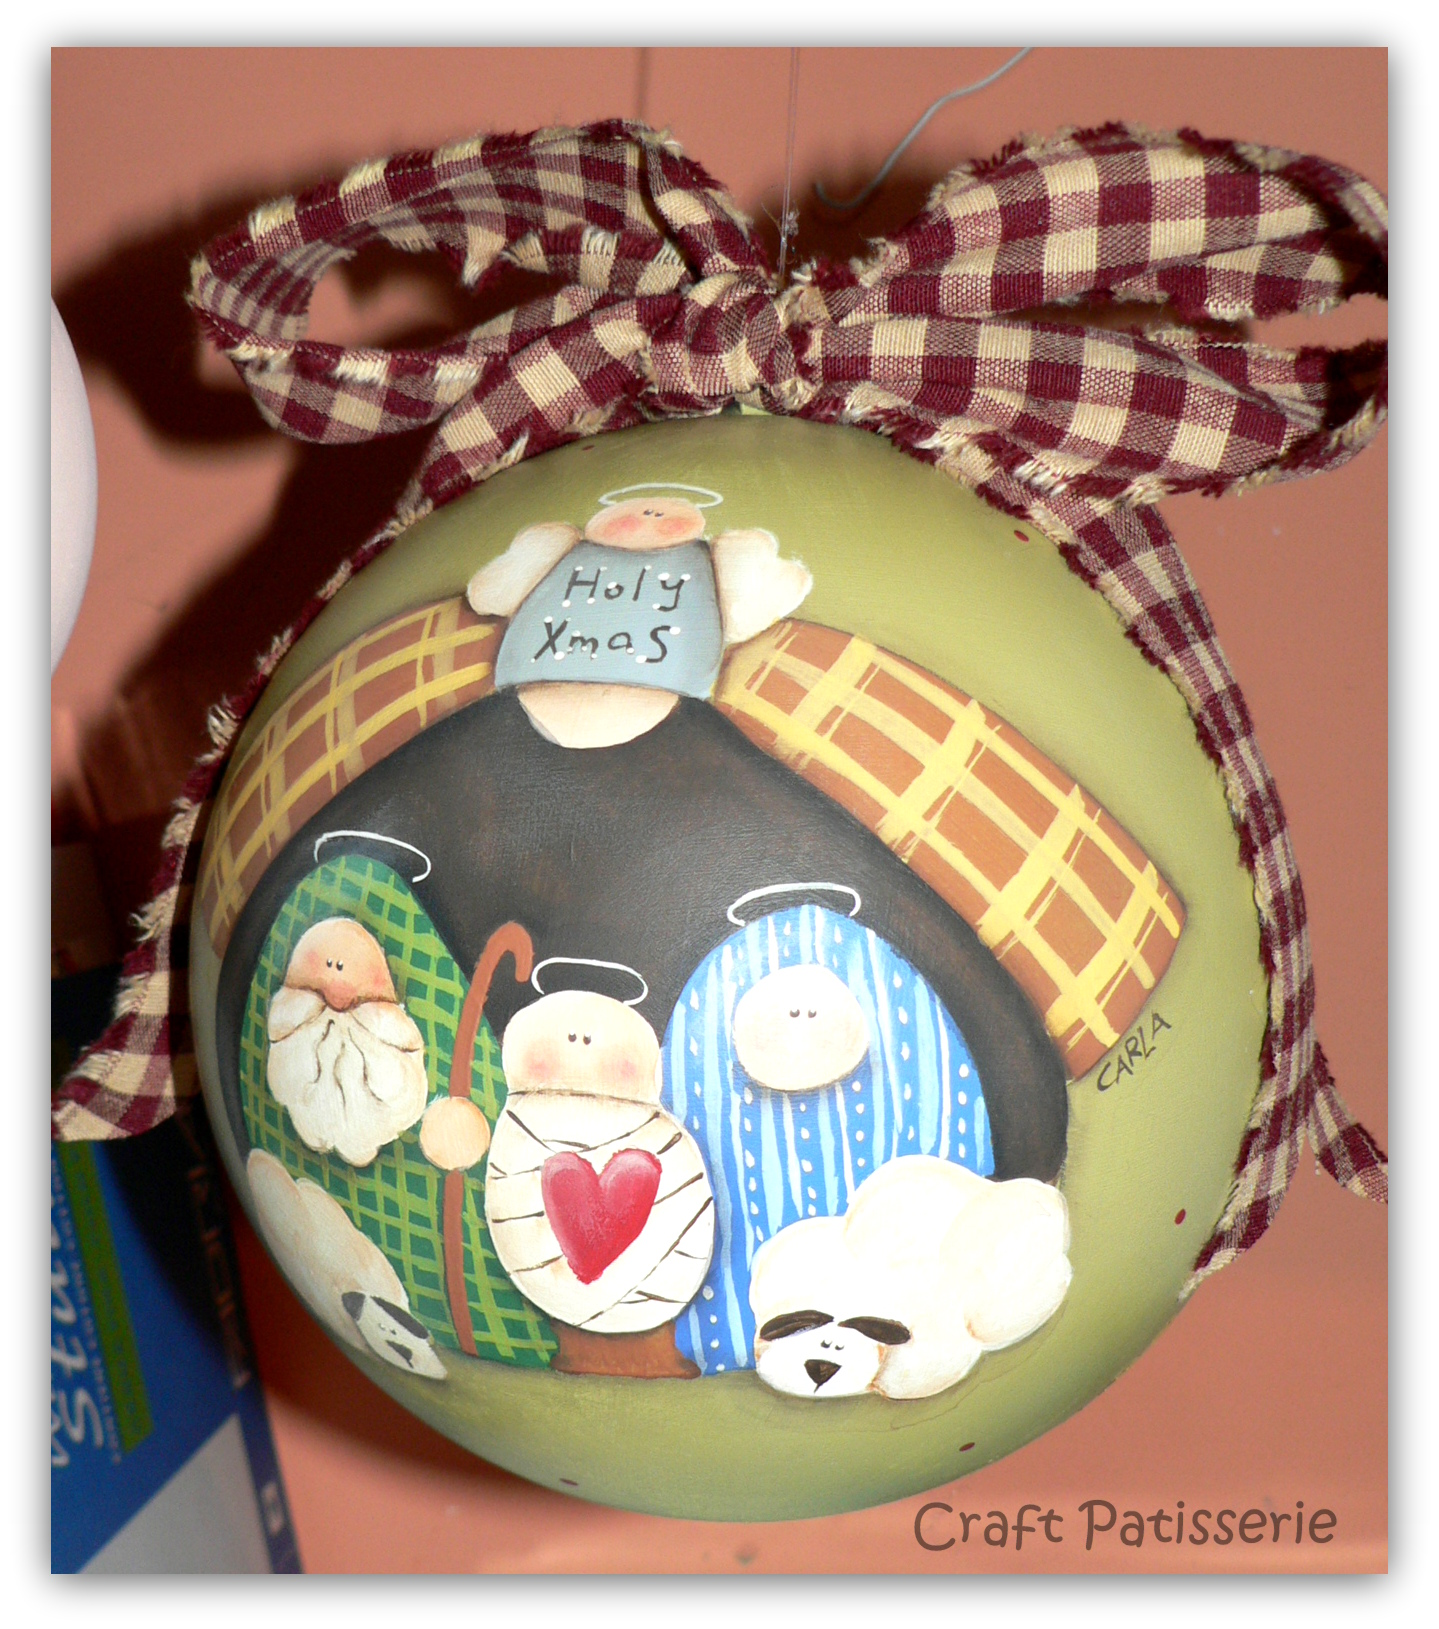 Country Painting Craft Patisserie